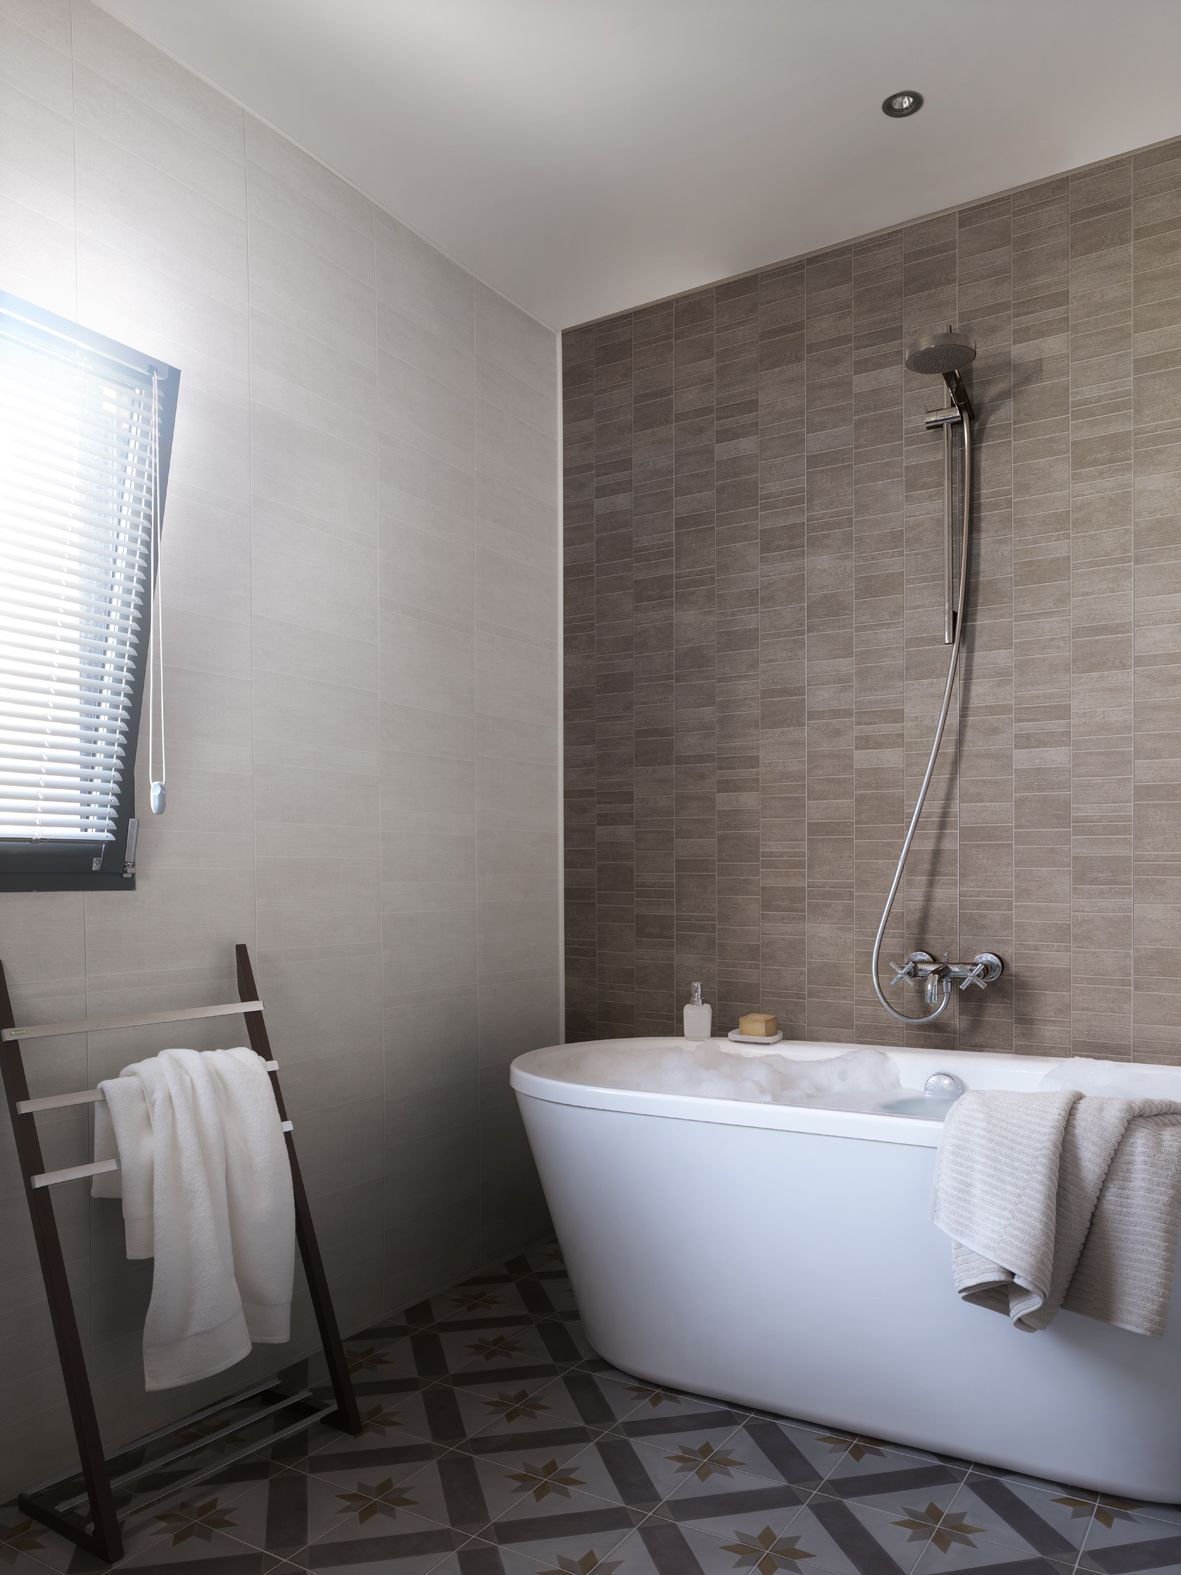 Pvc Wall Panelling An Easy Clean Waterproof And Low Maintenance Solution For Bathrooms A Gre Bathroom Wall Coverings Bathroom Cladding Bathroom Wall Panels